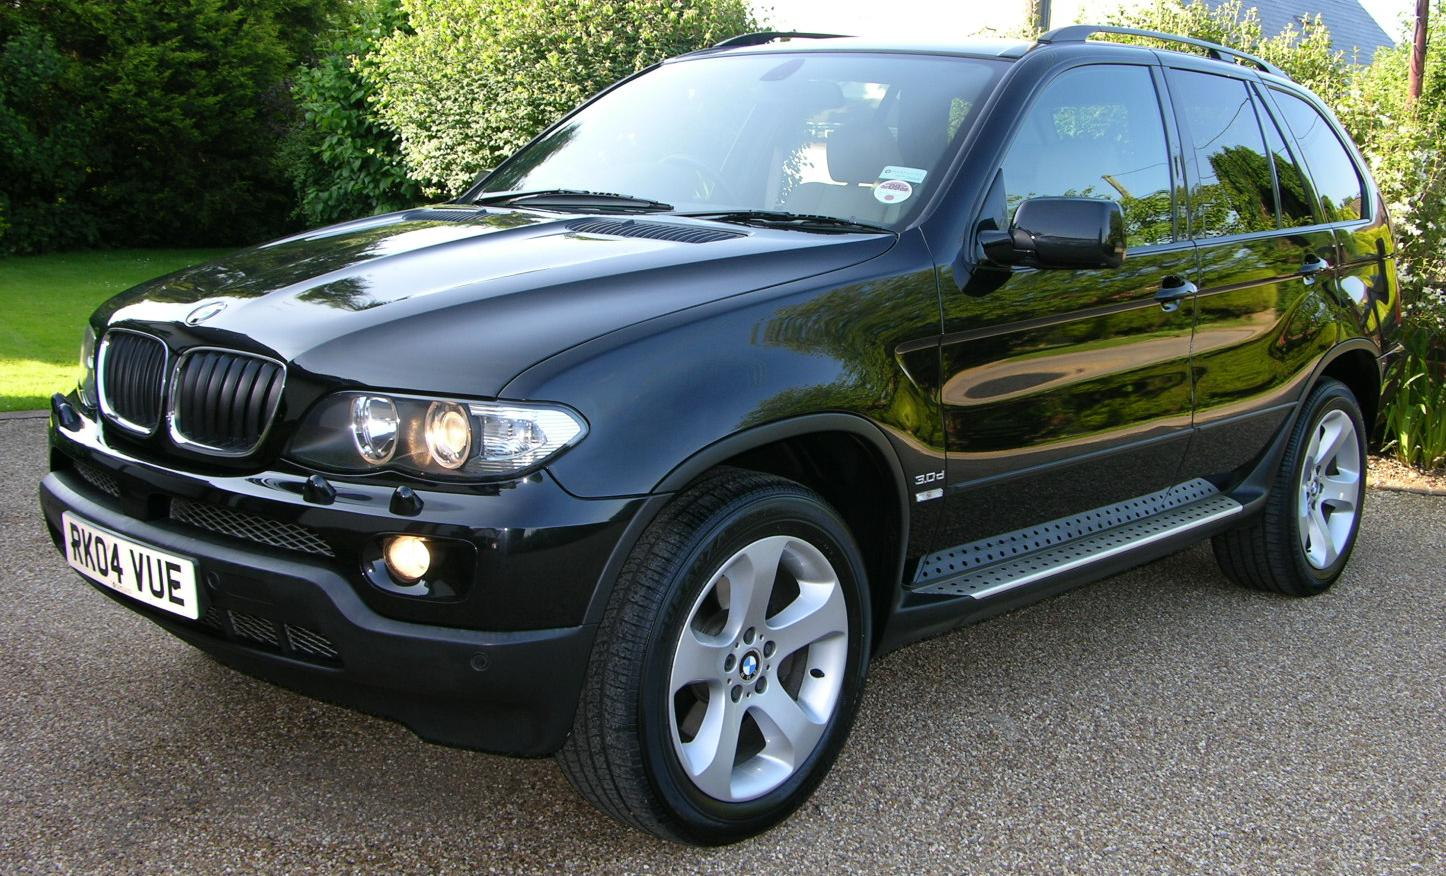 fichier bmw x5 sport flickr the car spy 23 jpg wikip dia. Black Bedroom Furniture Sets. Home Design Ideas